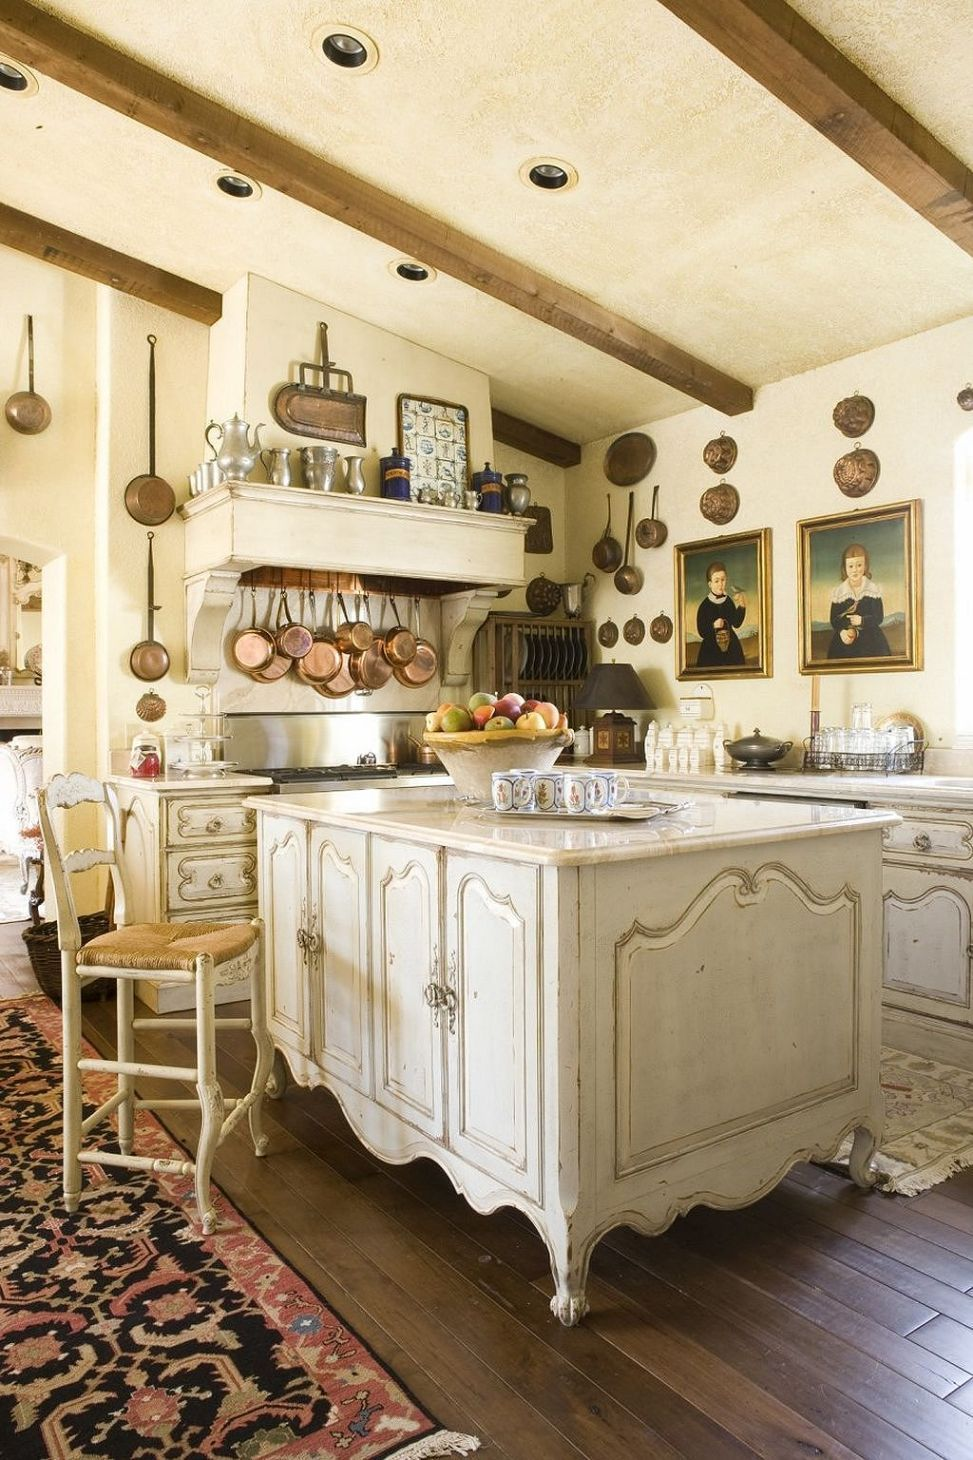 Modern French Country Kitchen Design Ideas (39 ...